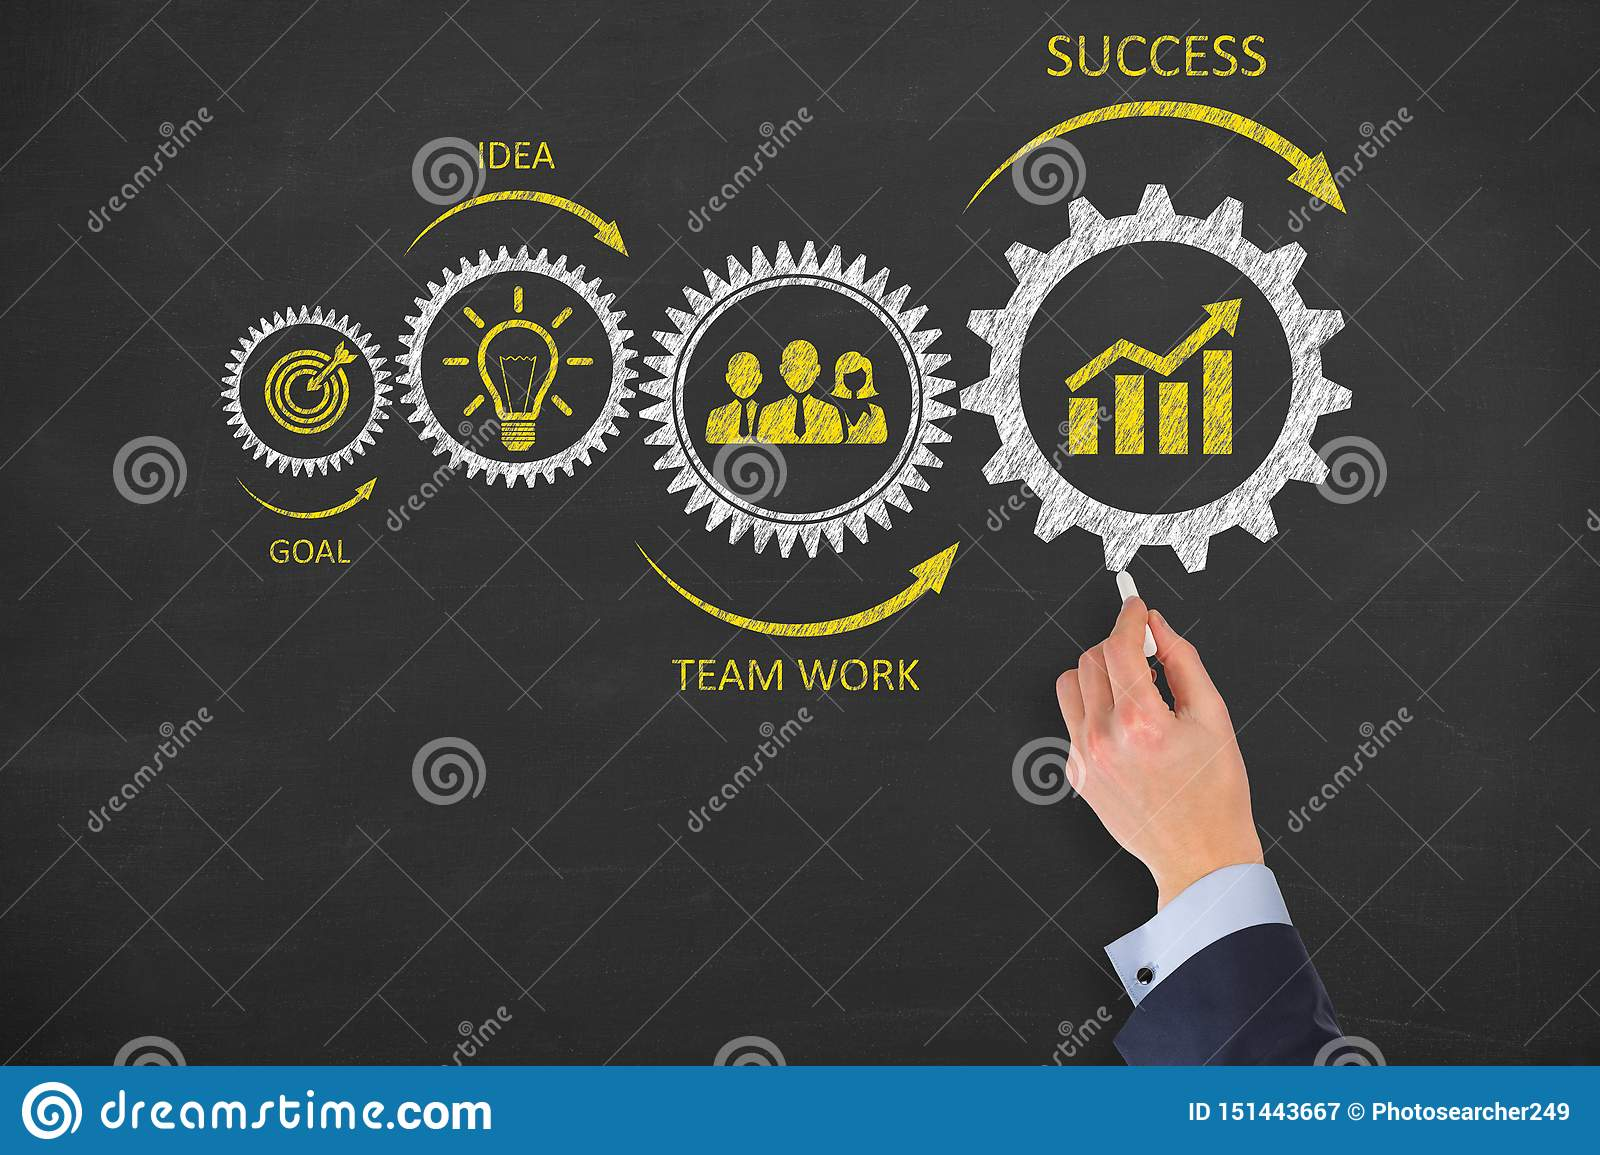 Business Person Drawing Success Concepts on Blackboard Background